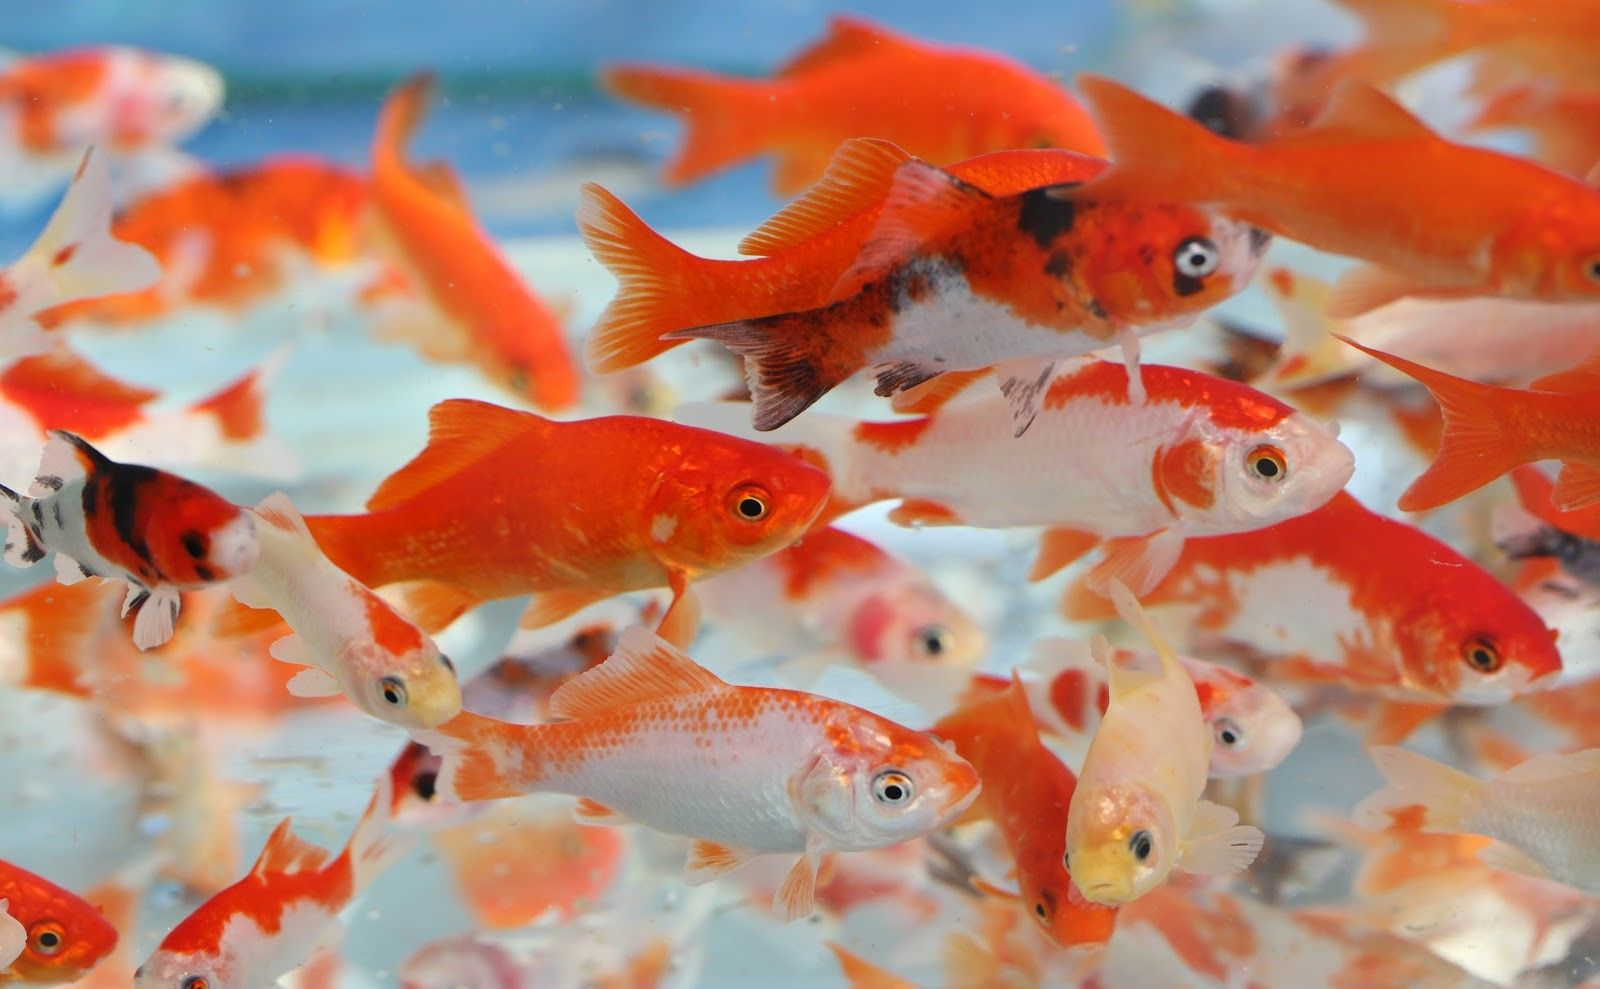 Variety of goldfish swimming together